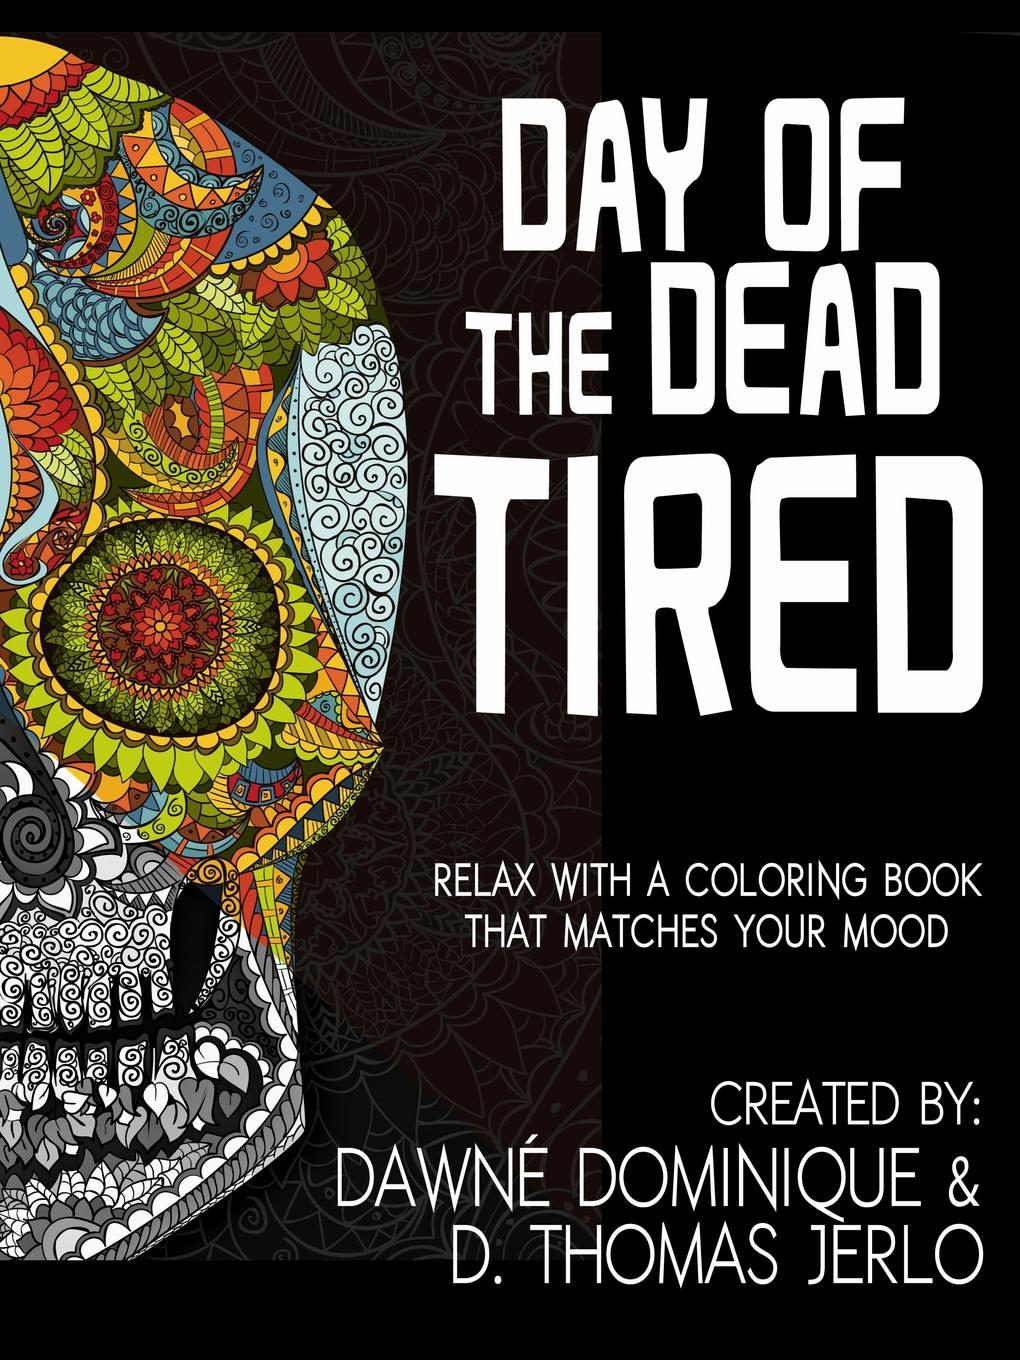 Dawné Dominique, D. Thomas jerlo Day of the Dead Tired цены